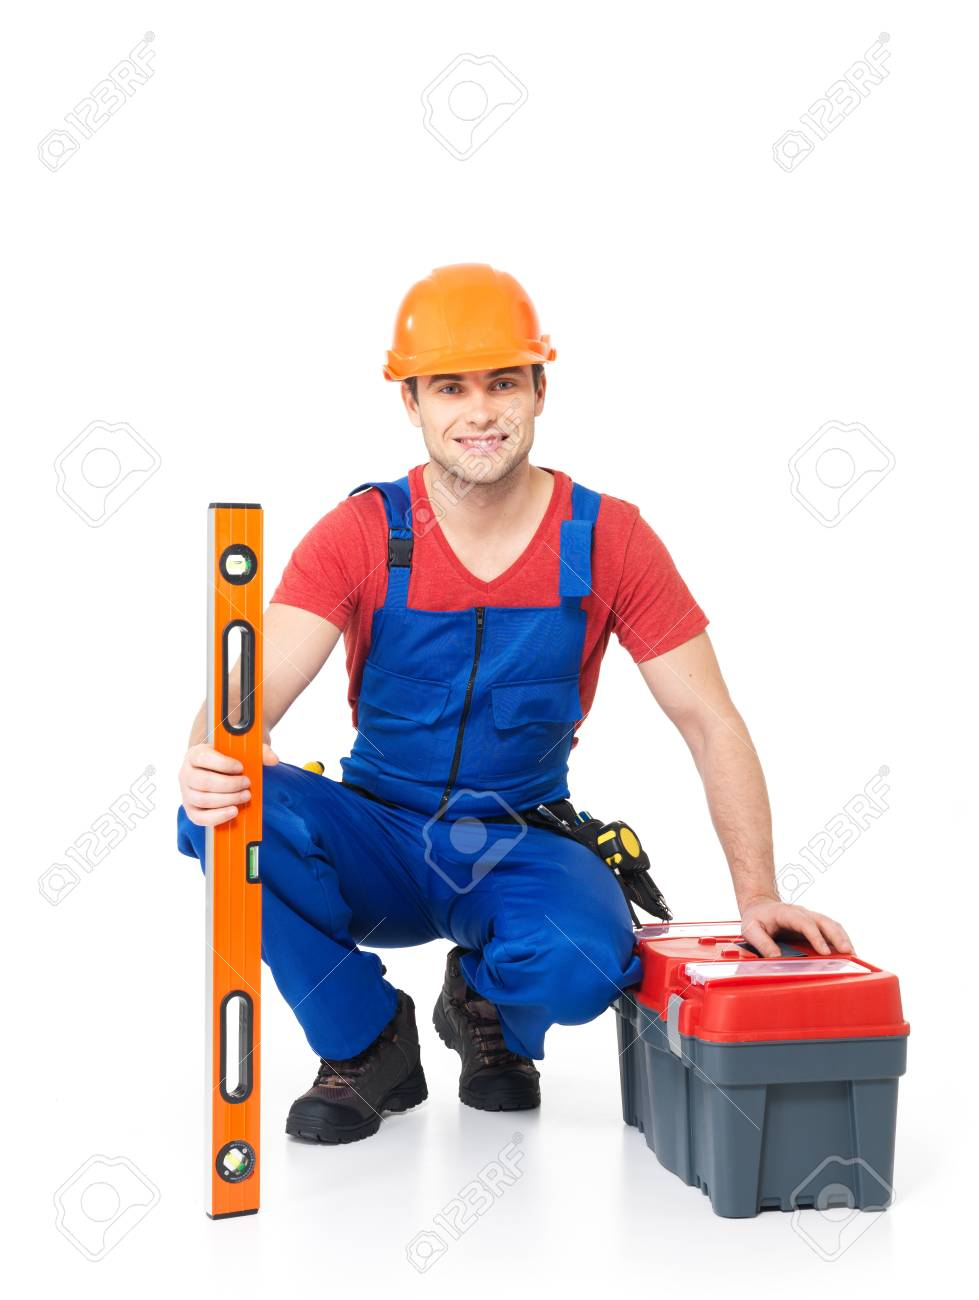 Portrait of smiling manual worker with tools isolated on  white background Stock Photo - 18629044